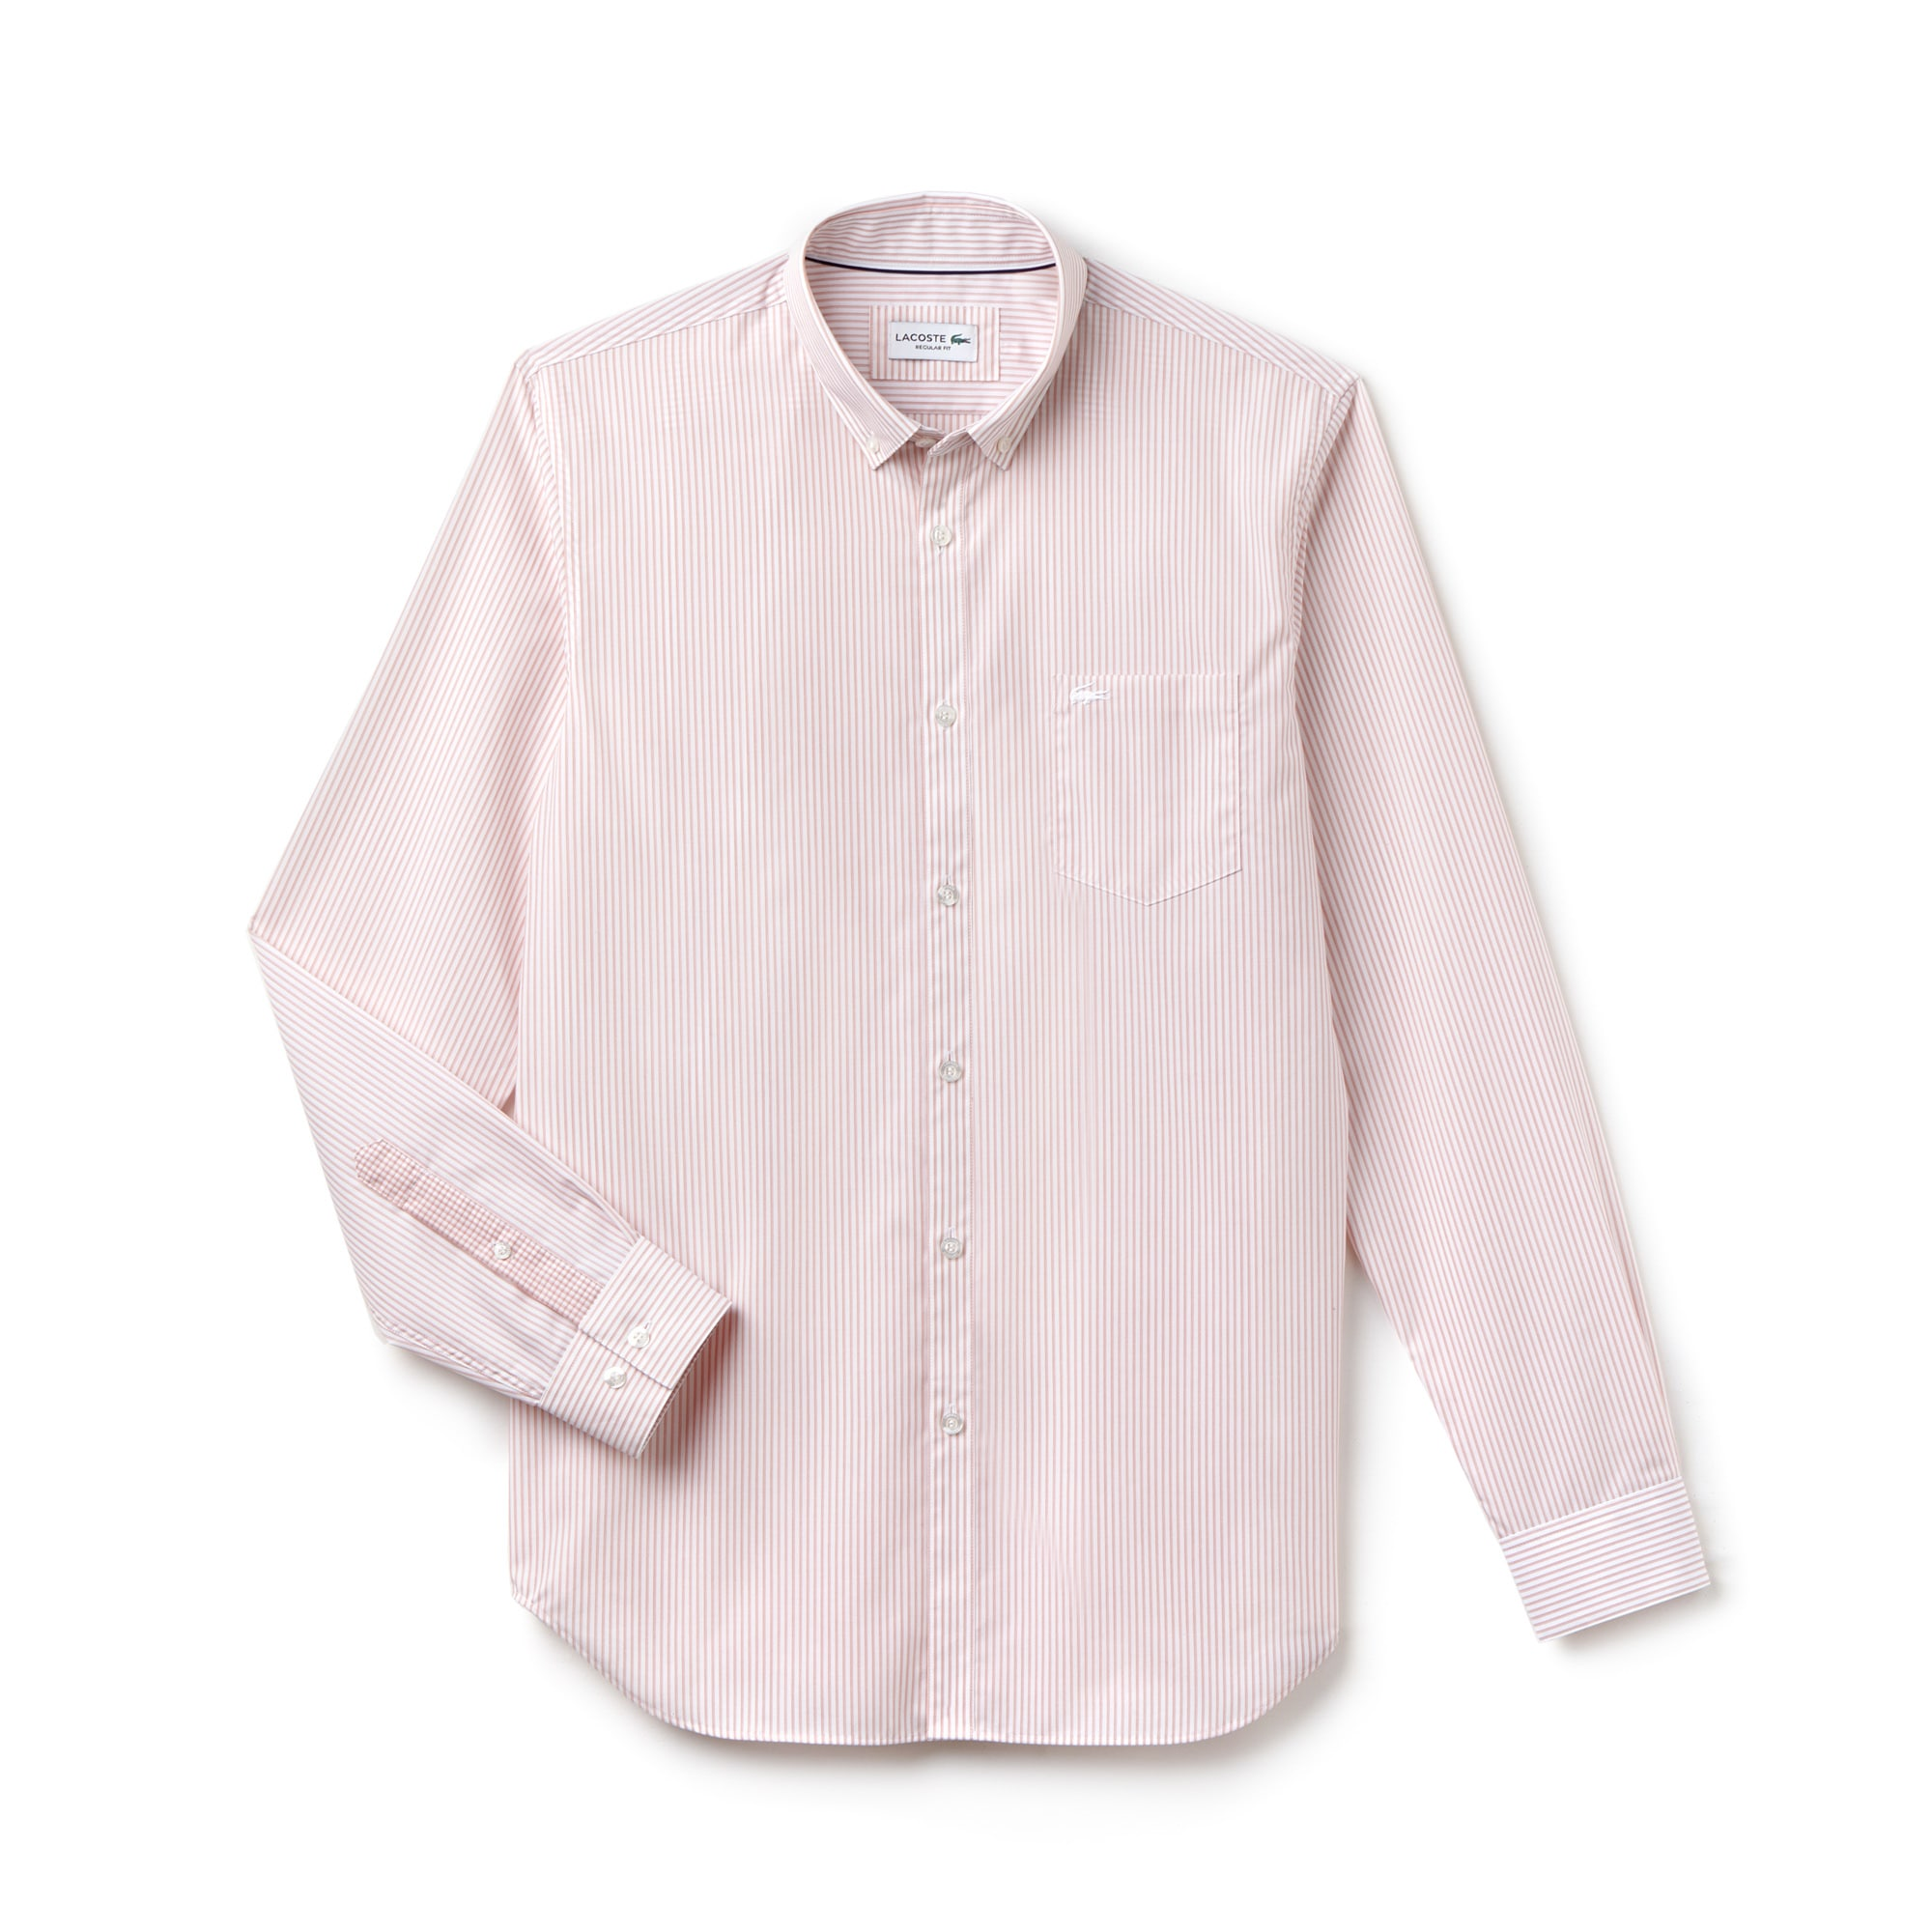 Camicia regular fit in popeline di cotone a righe